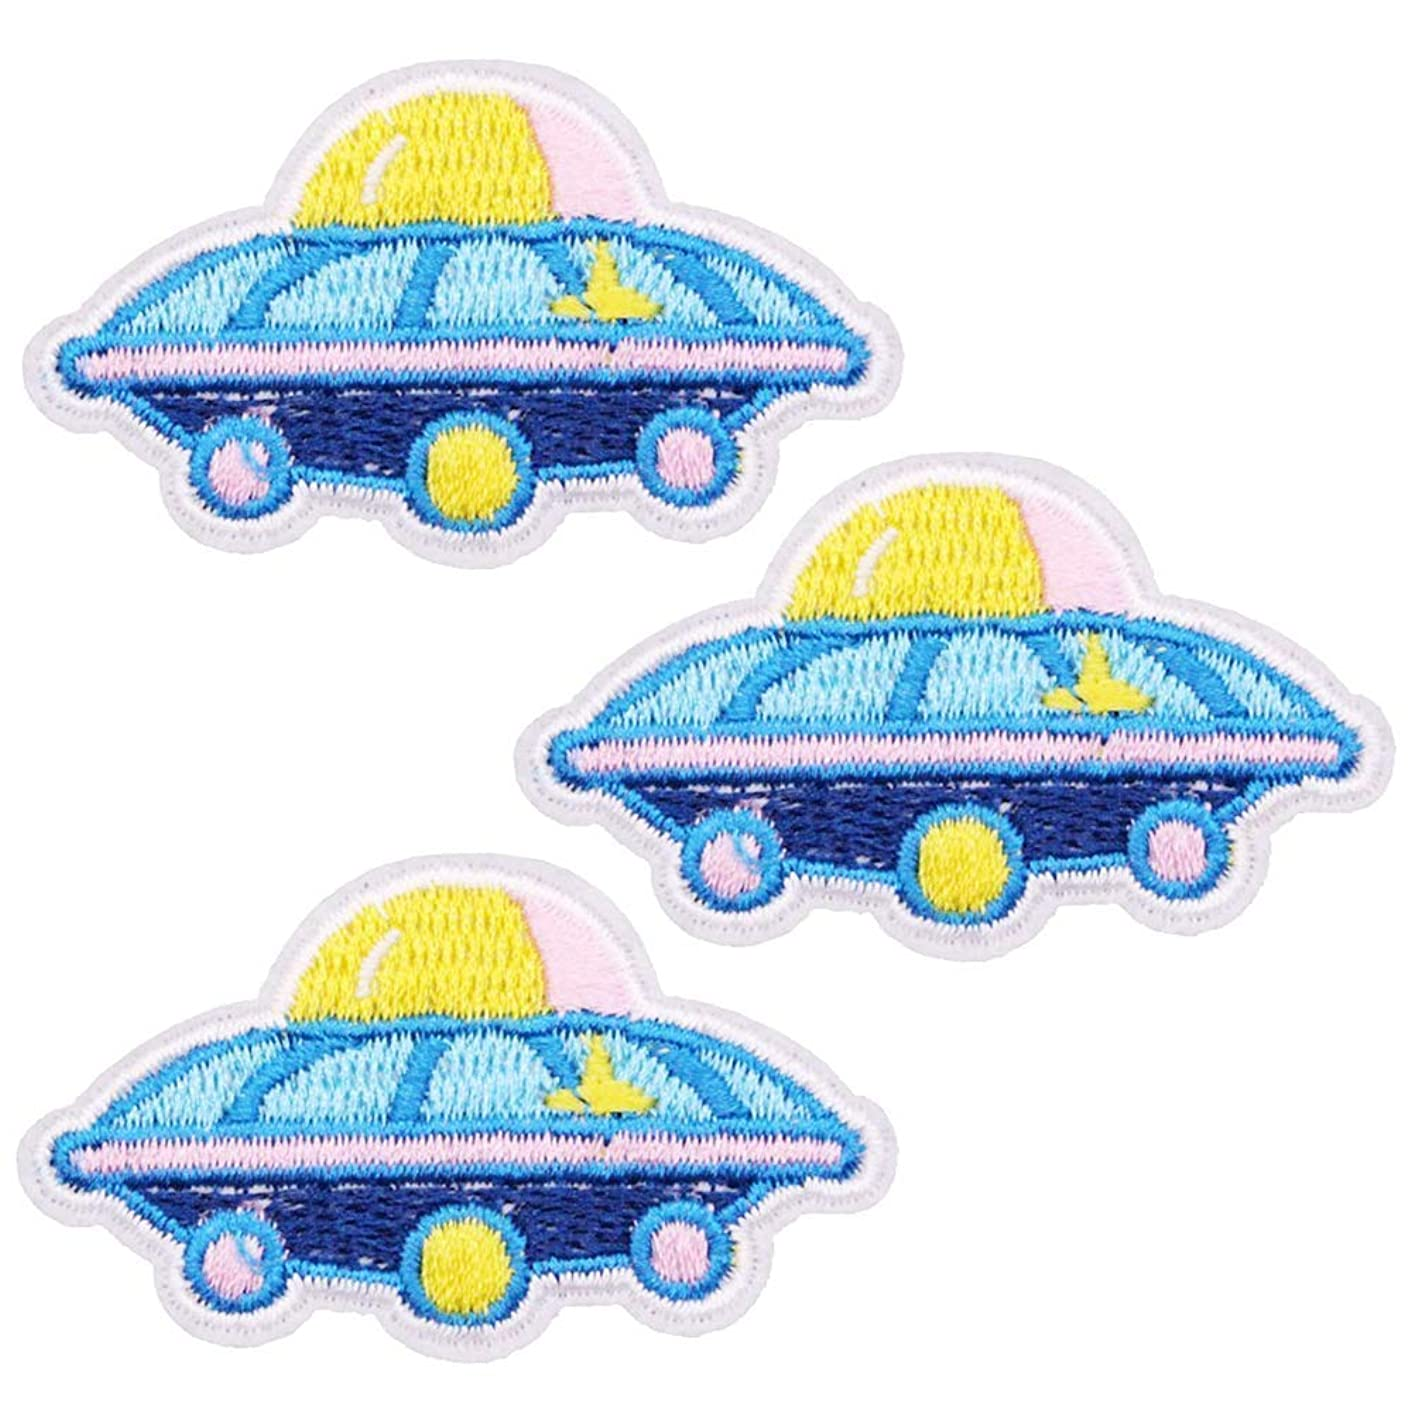 U-Sky Sew or Iron on Patches - Cartoon Spaceship UFO Patch for Kids Clothes, Jackets, Jeans, Backpacks, School Bag - Pack of 3pcs - Size: 2.2x1.3inch